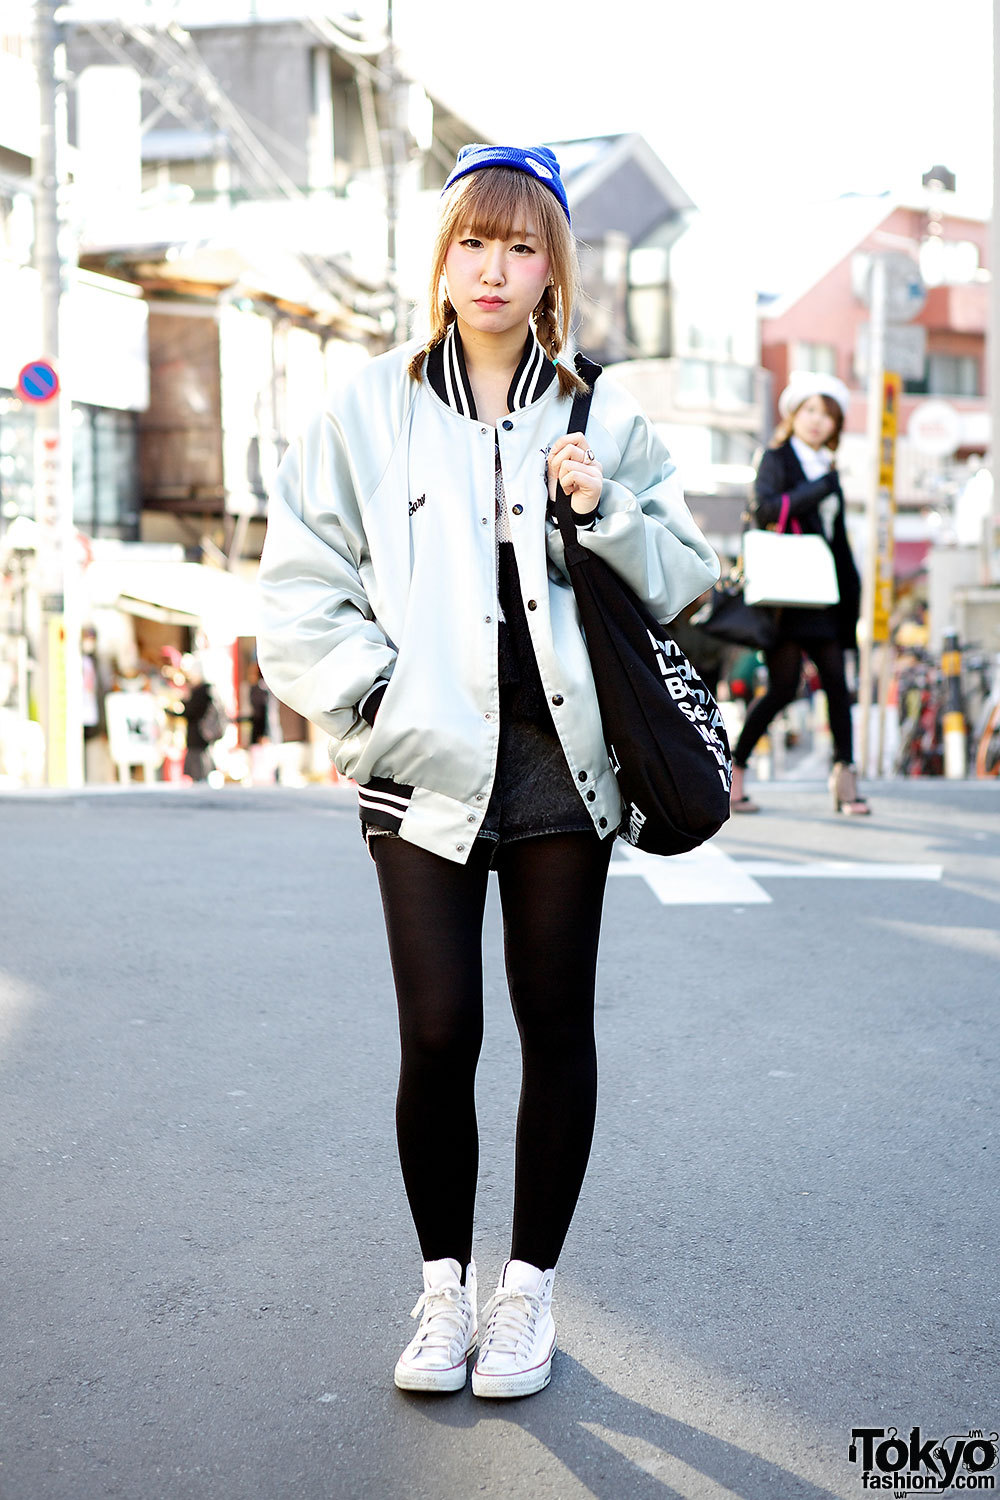 Oversized jacket, w/ Nadia Harajuku top and Converse sneakers.